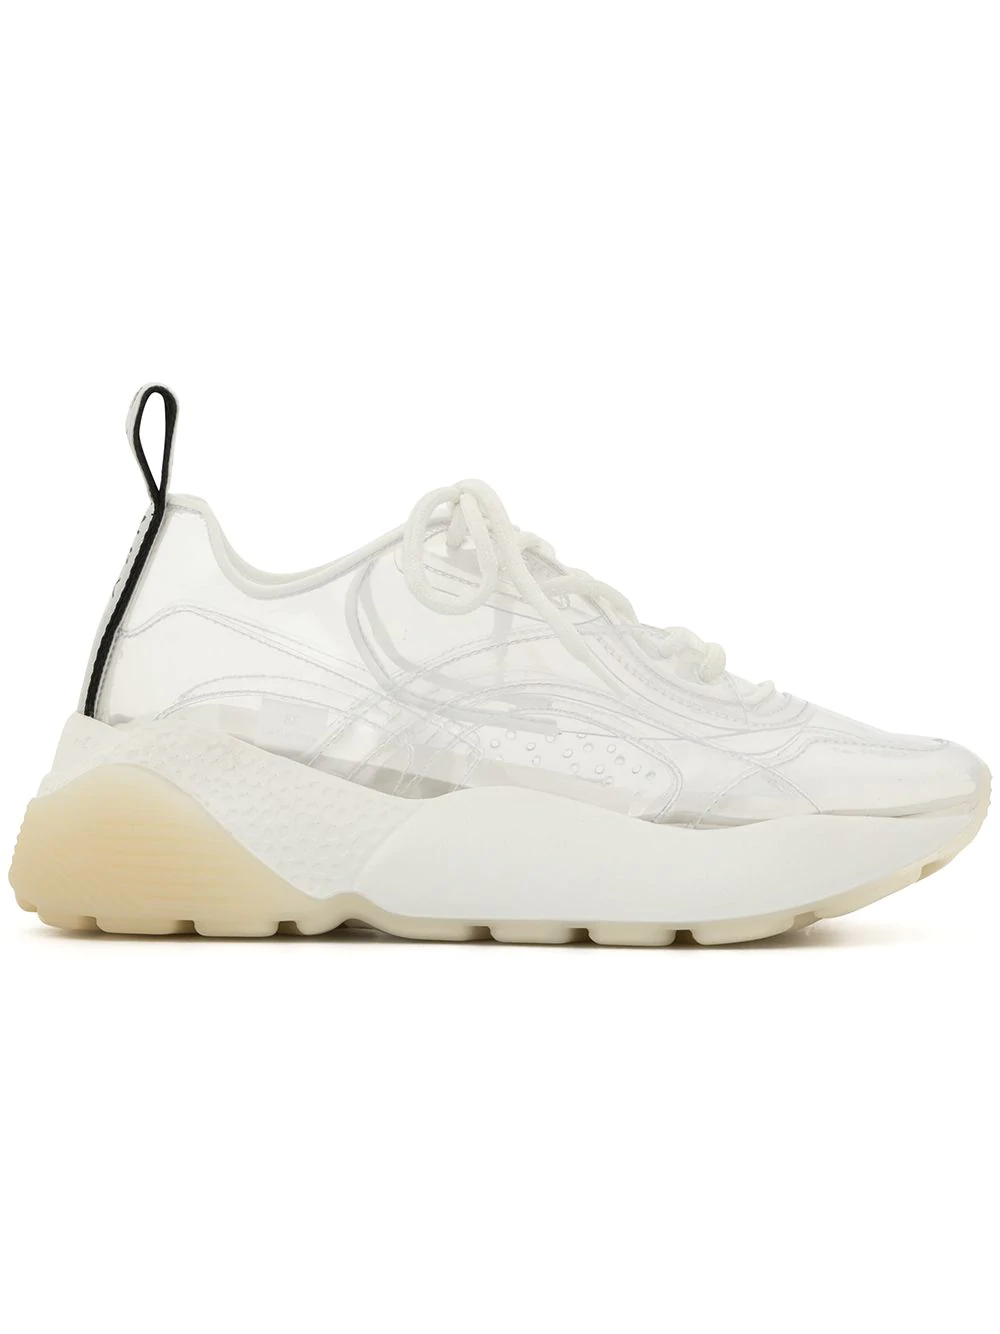 a1dc97b46cd79 Stella Mccartney Eclypse Faux Leather-Trimmed Pu Sneakers In White ...